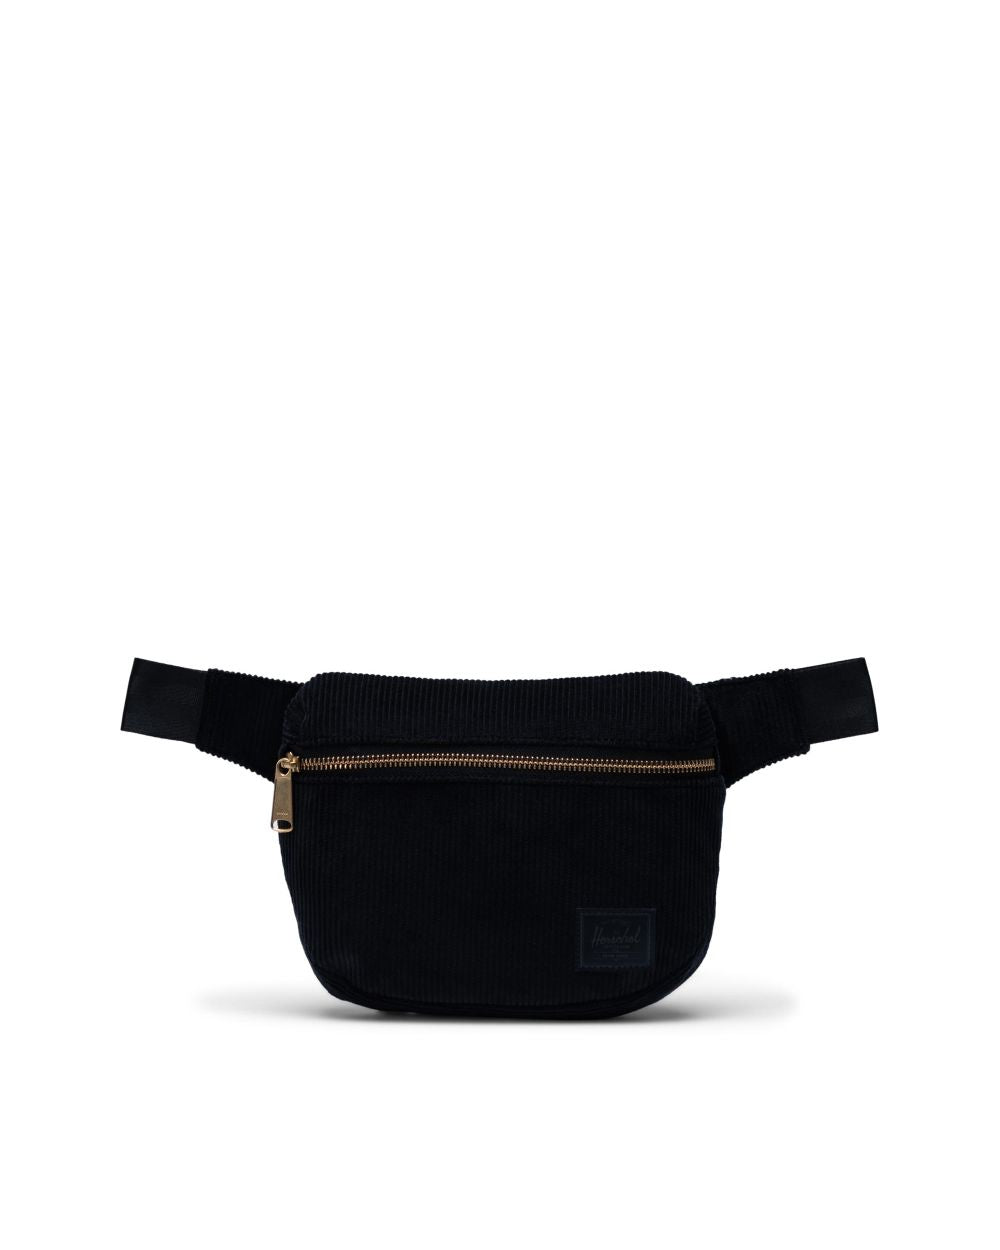 FIFTEEN HIP PACK CORDUROY - BLACK